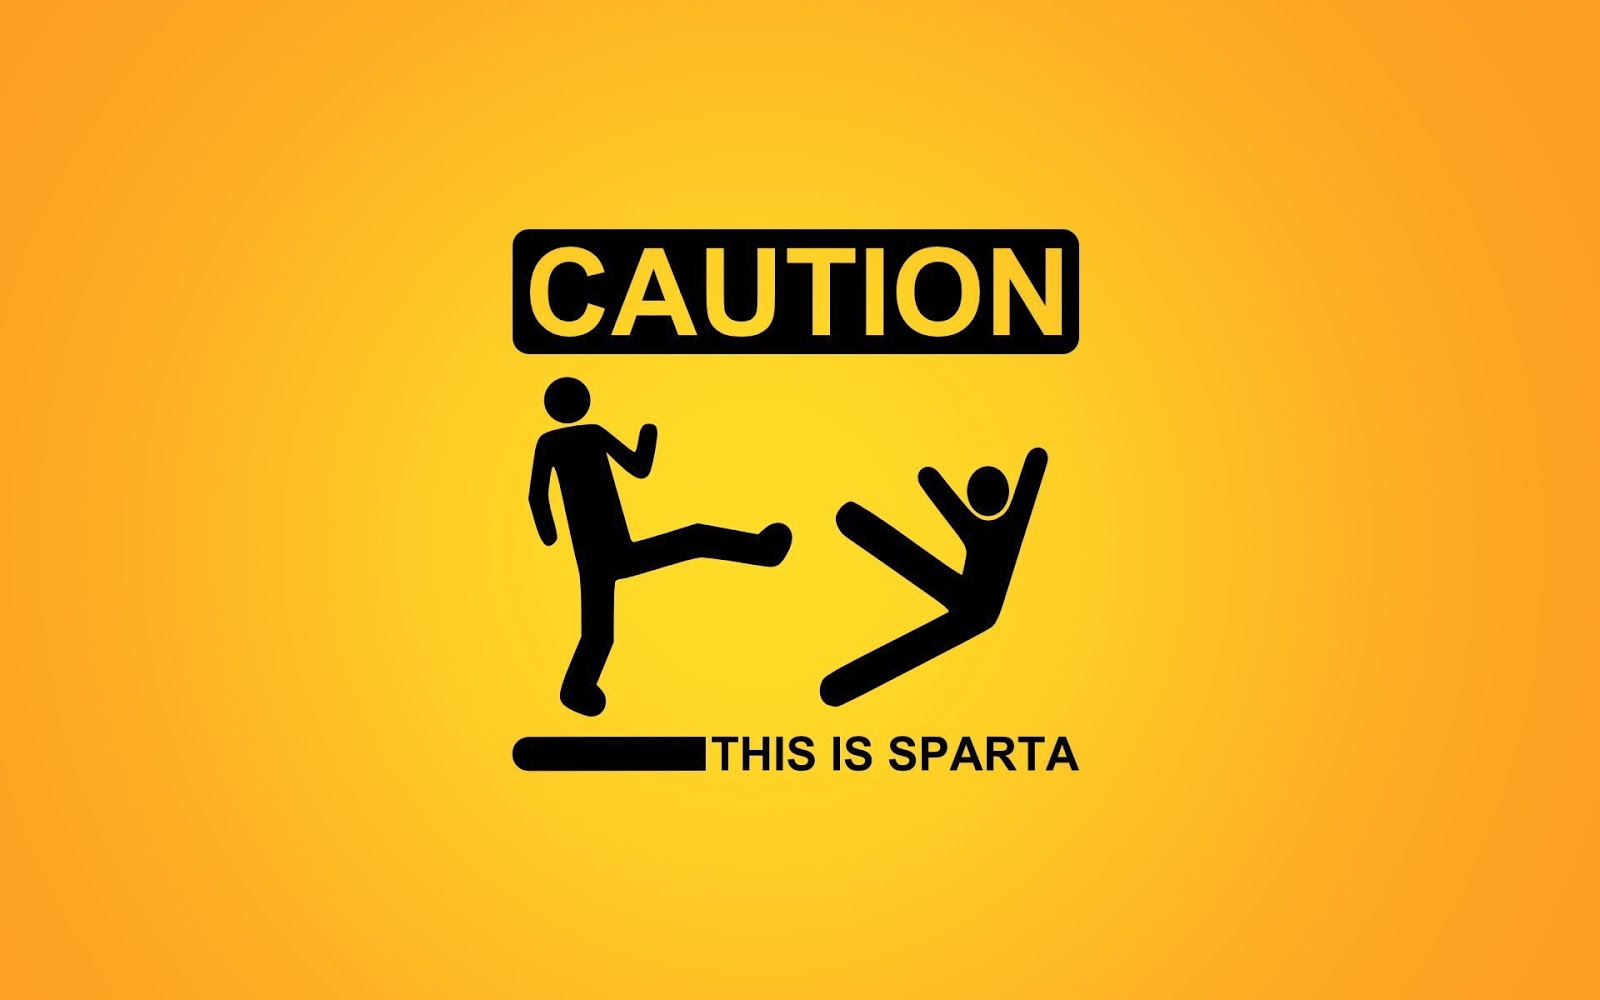 http://2.bp.blogspot.com/-BLNUnqnej6A/Th4LaTsqnQI/AAAAAAAAIOg/WO0wJzfyoEU/s1600/caution%20this%20is%20sparta%20sign%20hd%20wallpaper.jpg